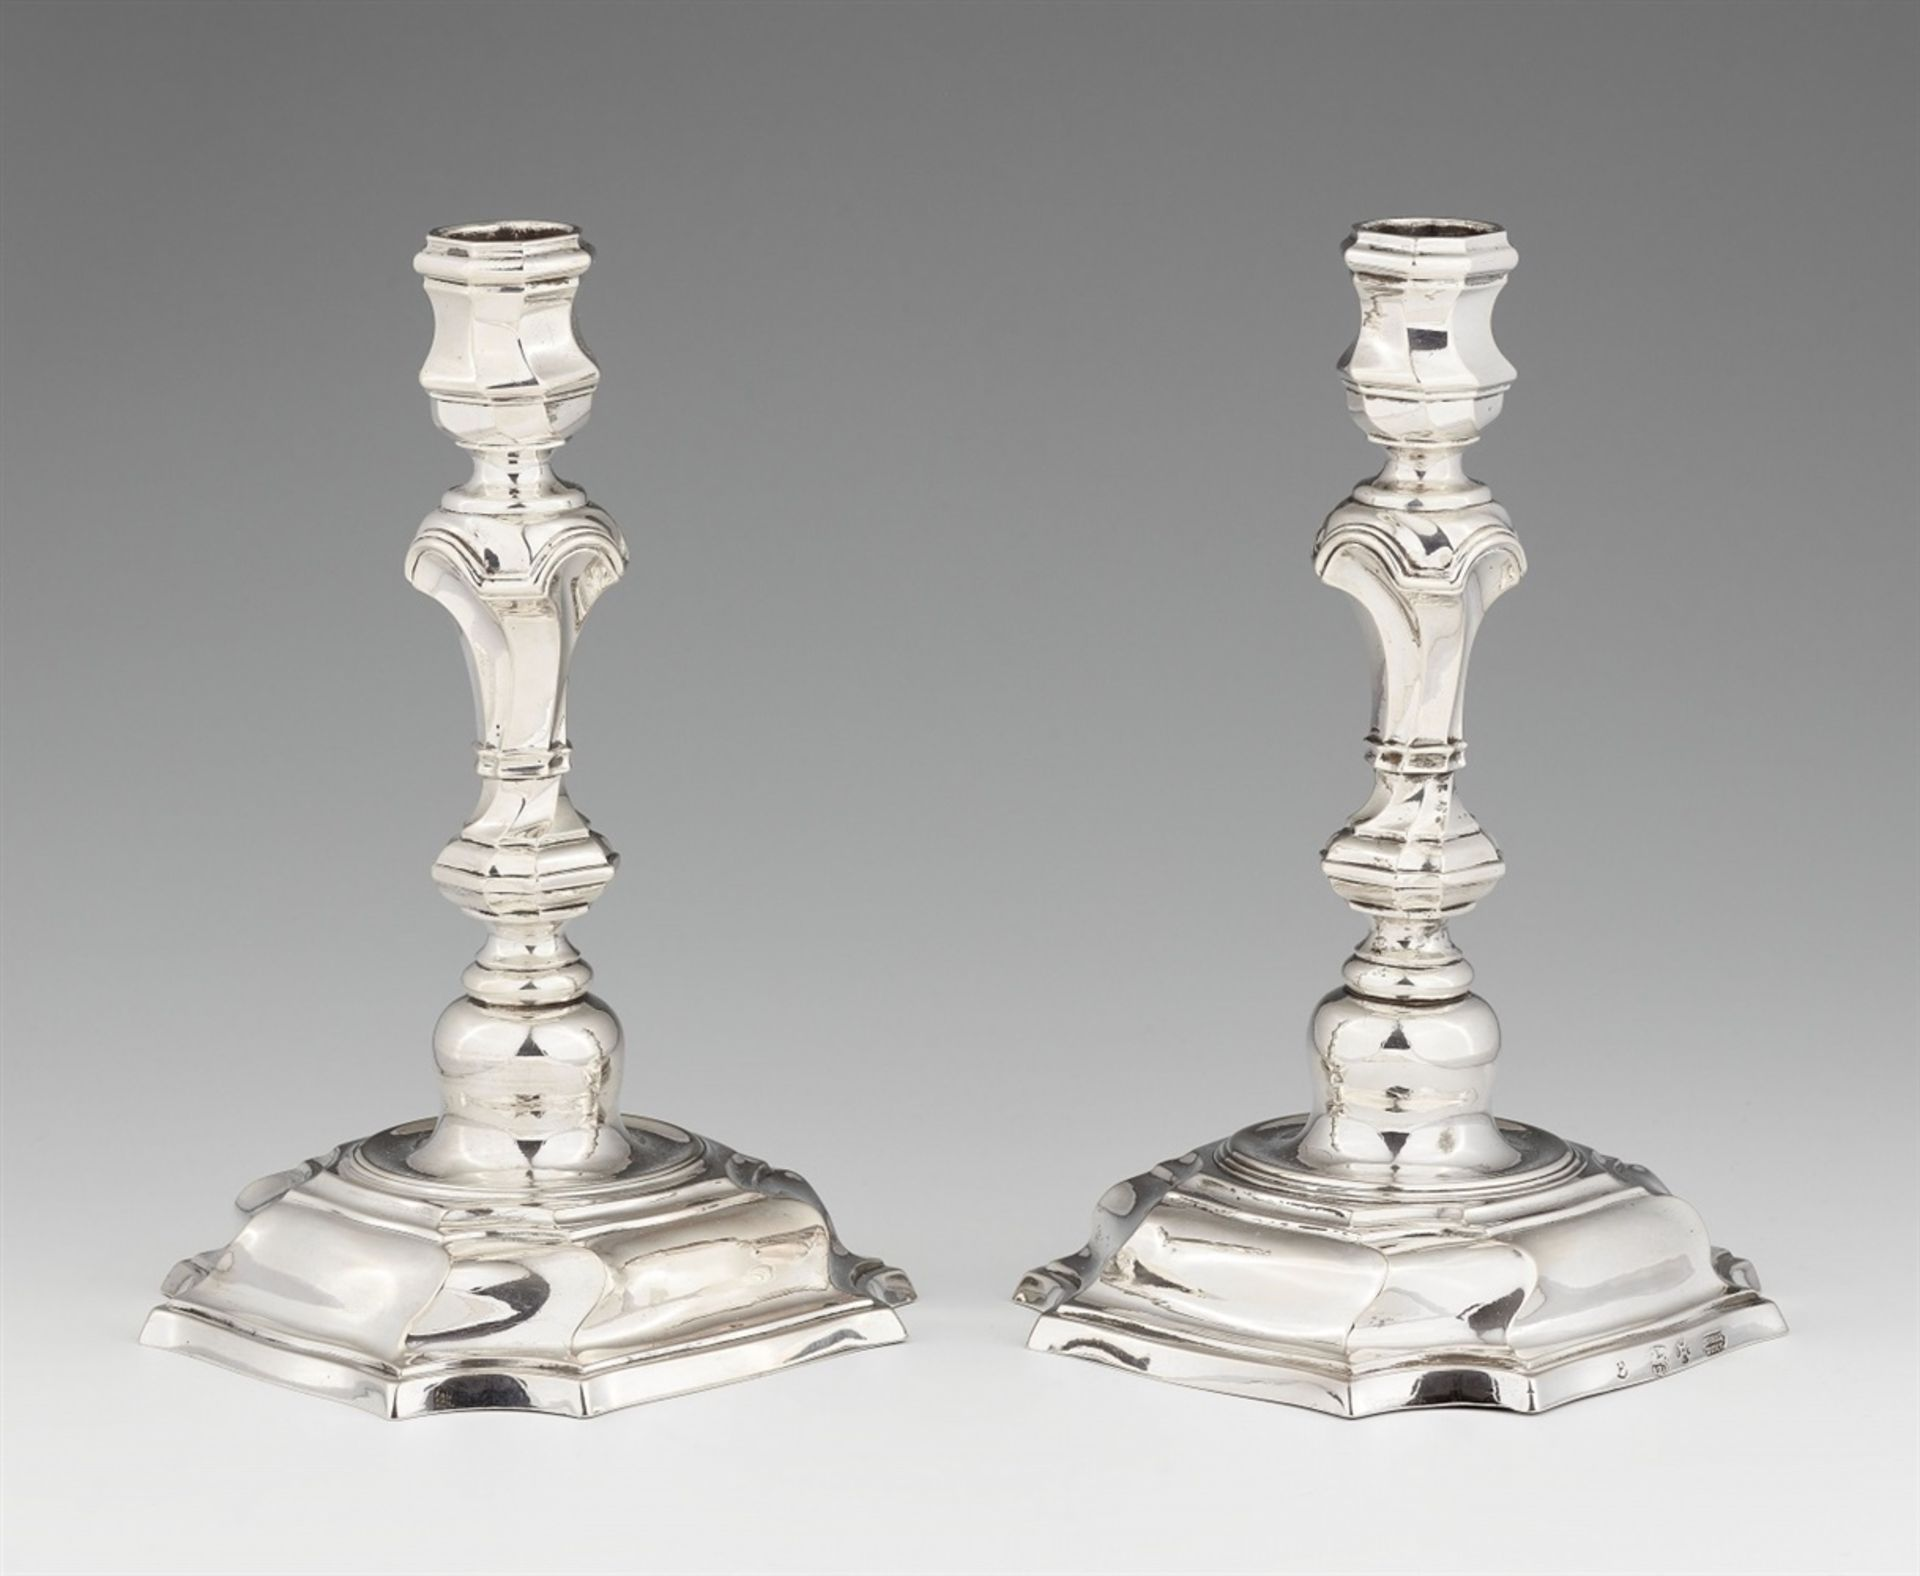 Los 740 - A pair of Hameln silver candlesticksSilver Moulded baluster-form shafts with twist fluting issuing